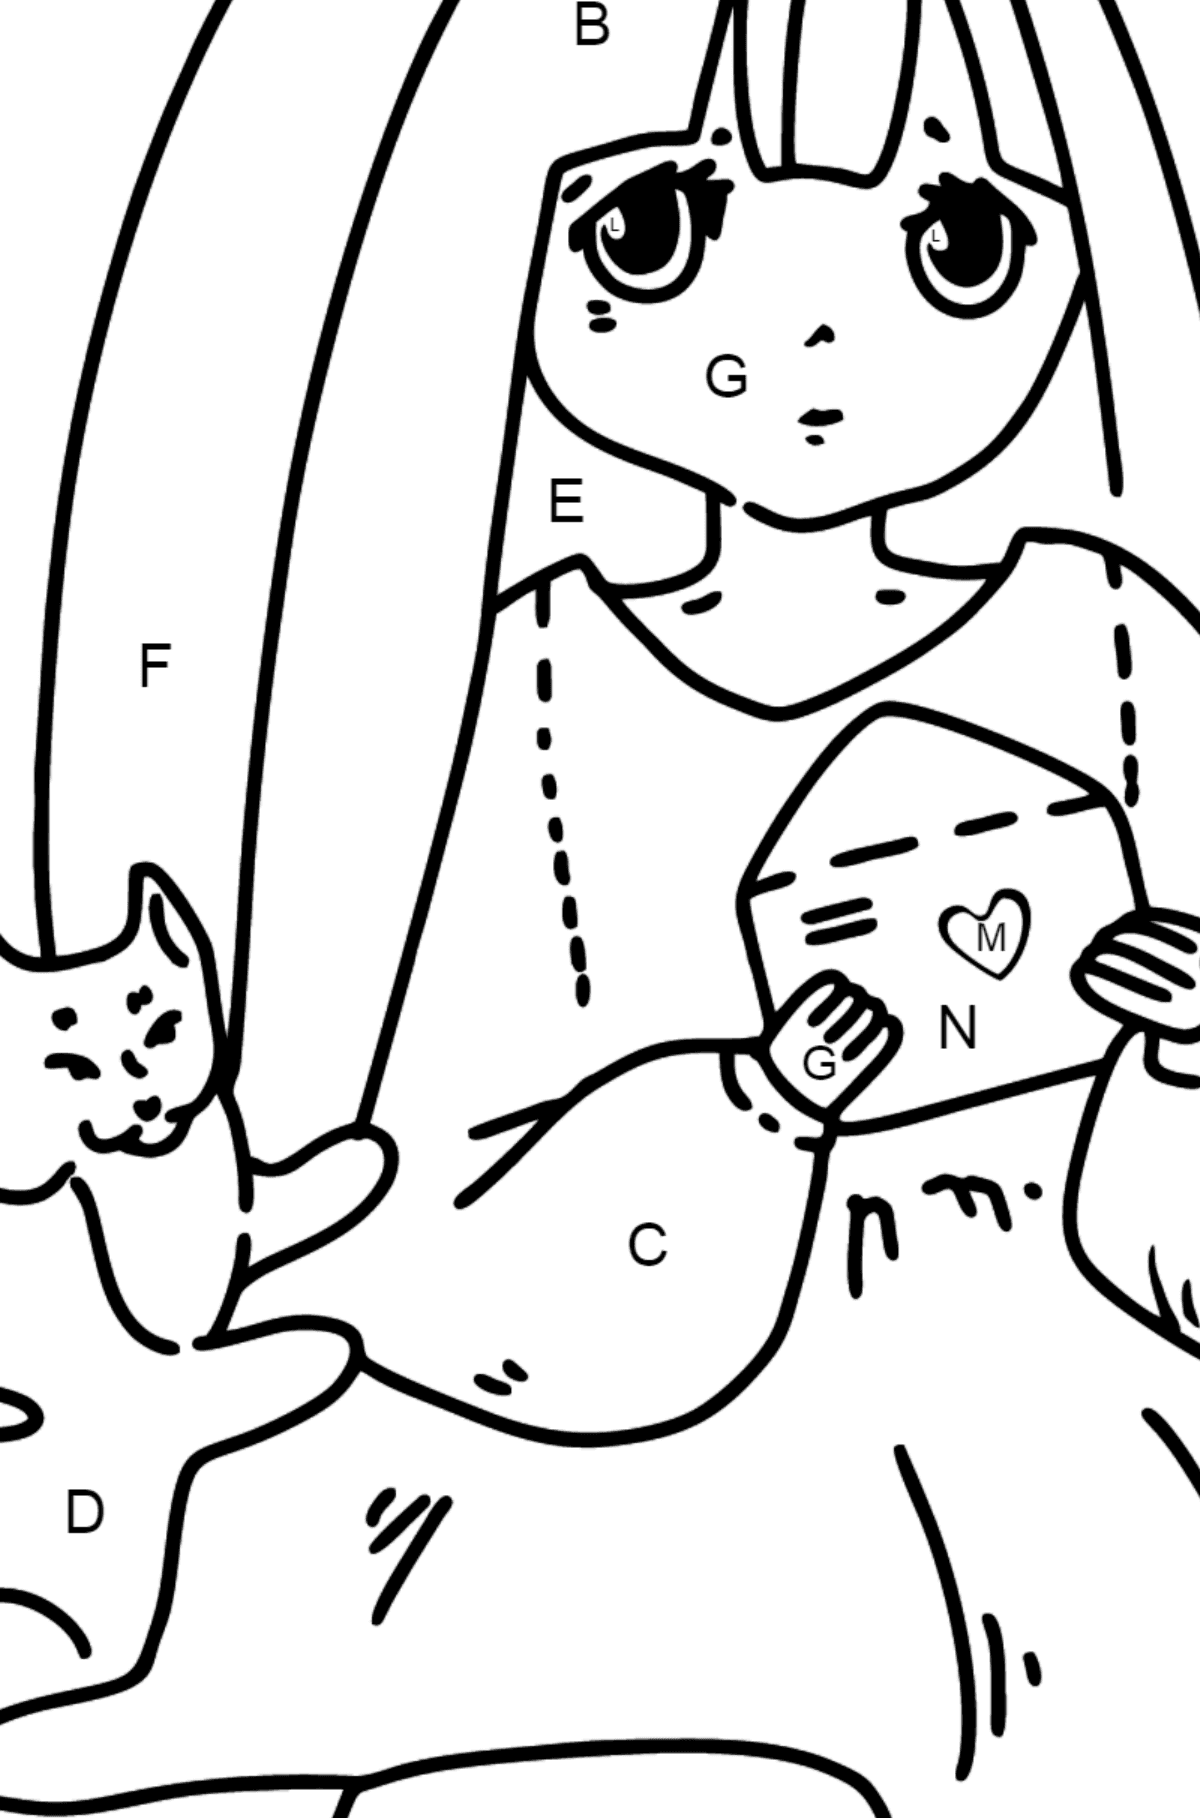 Anime Cute Girl Coloring Pages - Coloring by Letters for Kids